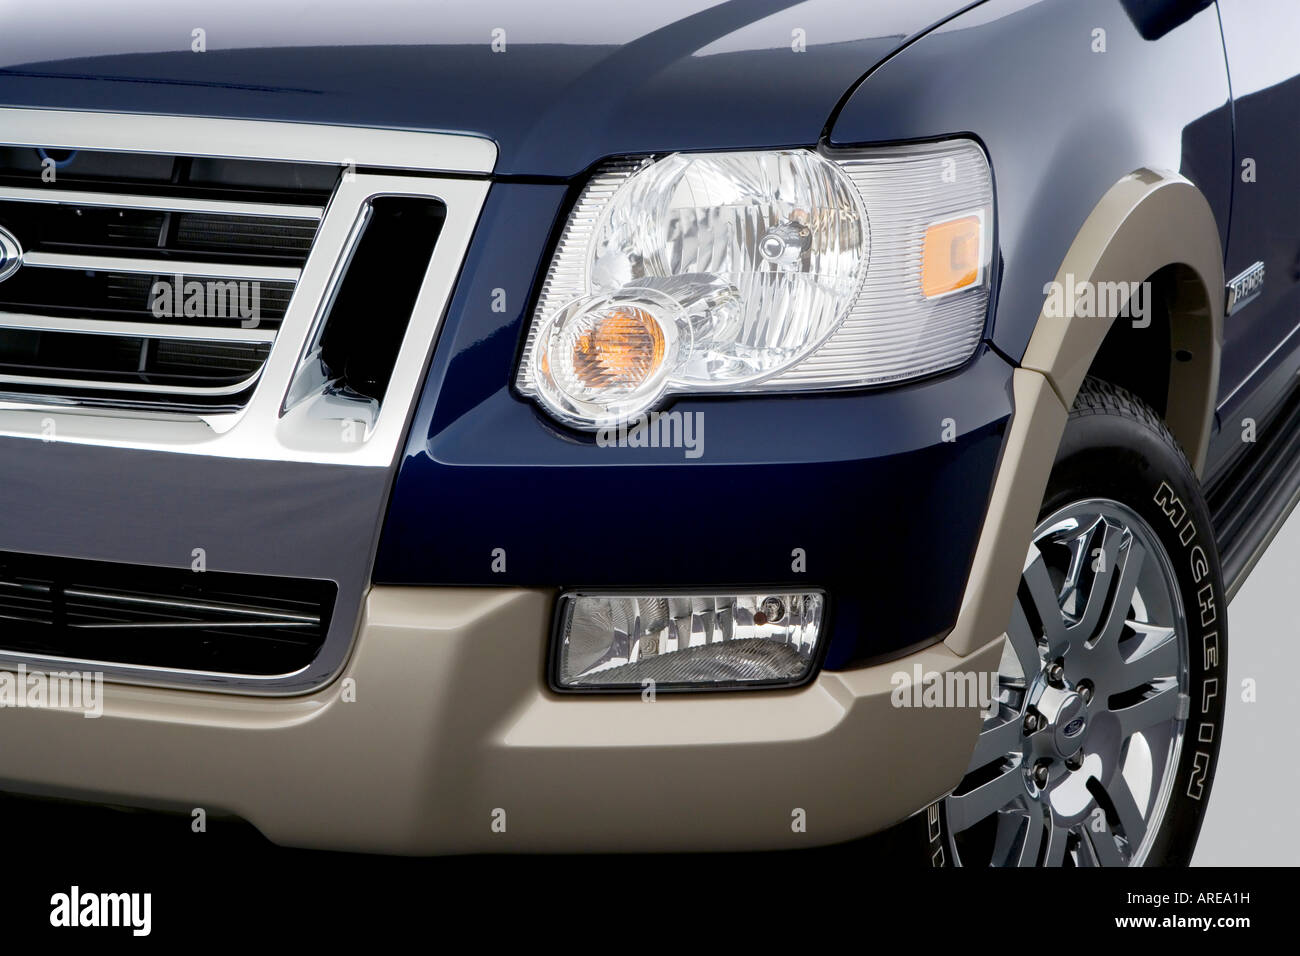 2006 ford explorer eddie bauer in blue headlight